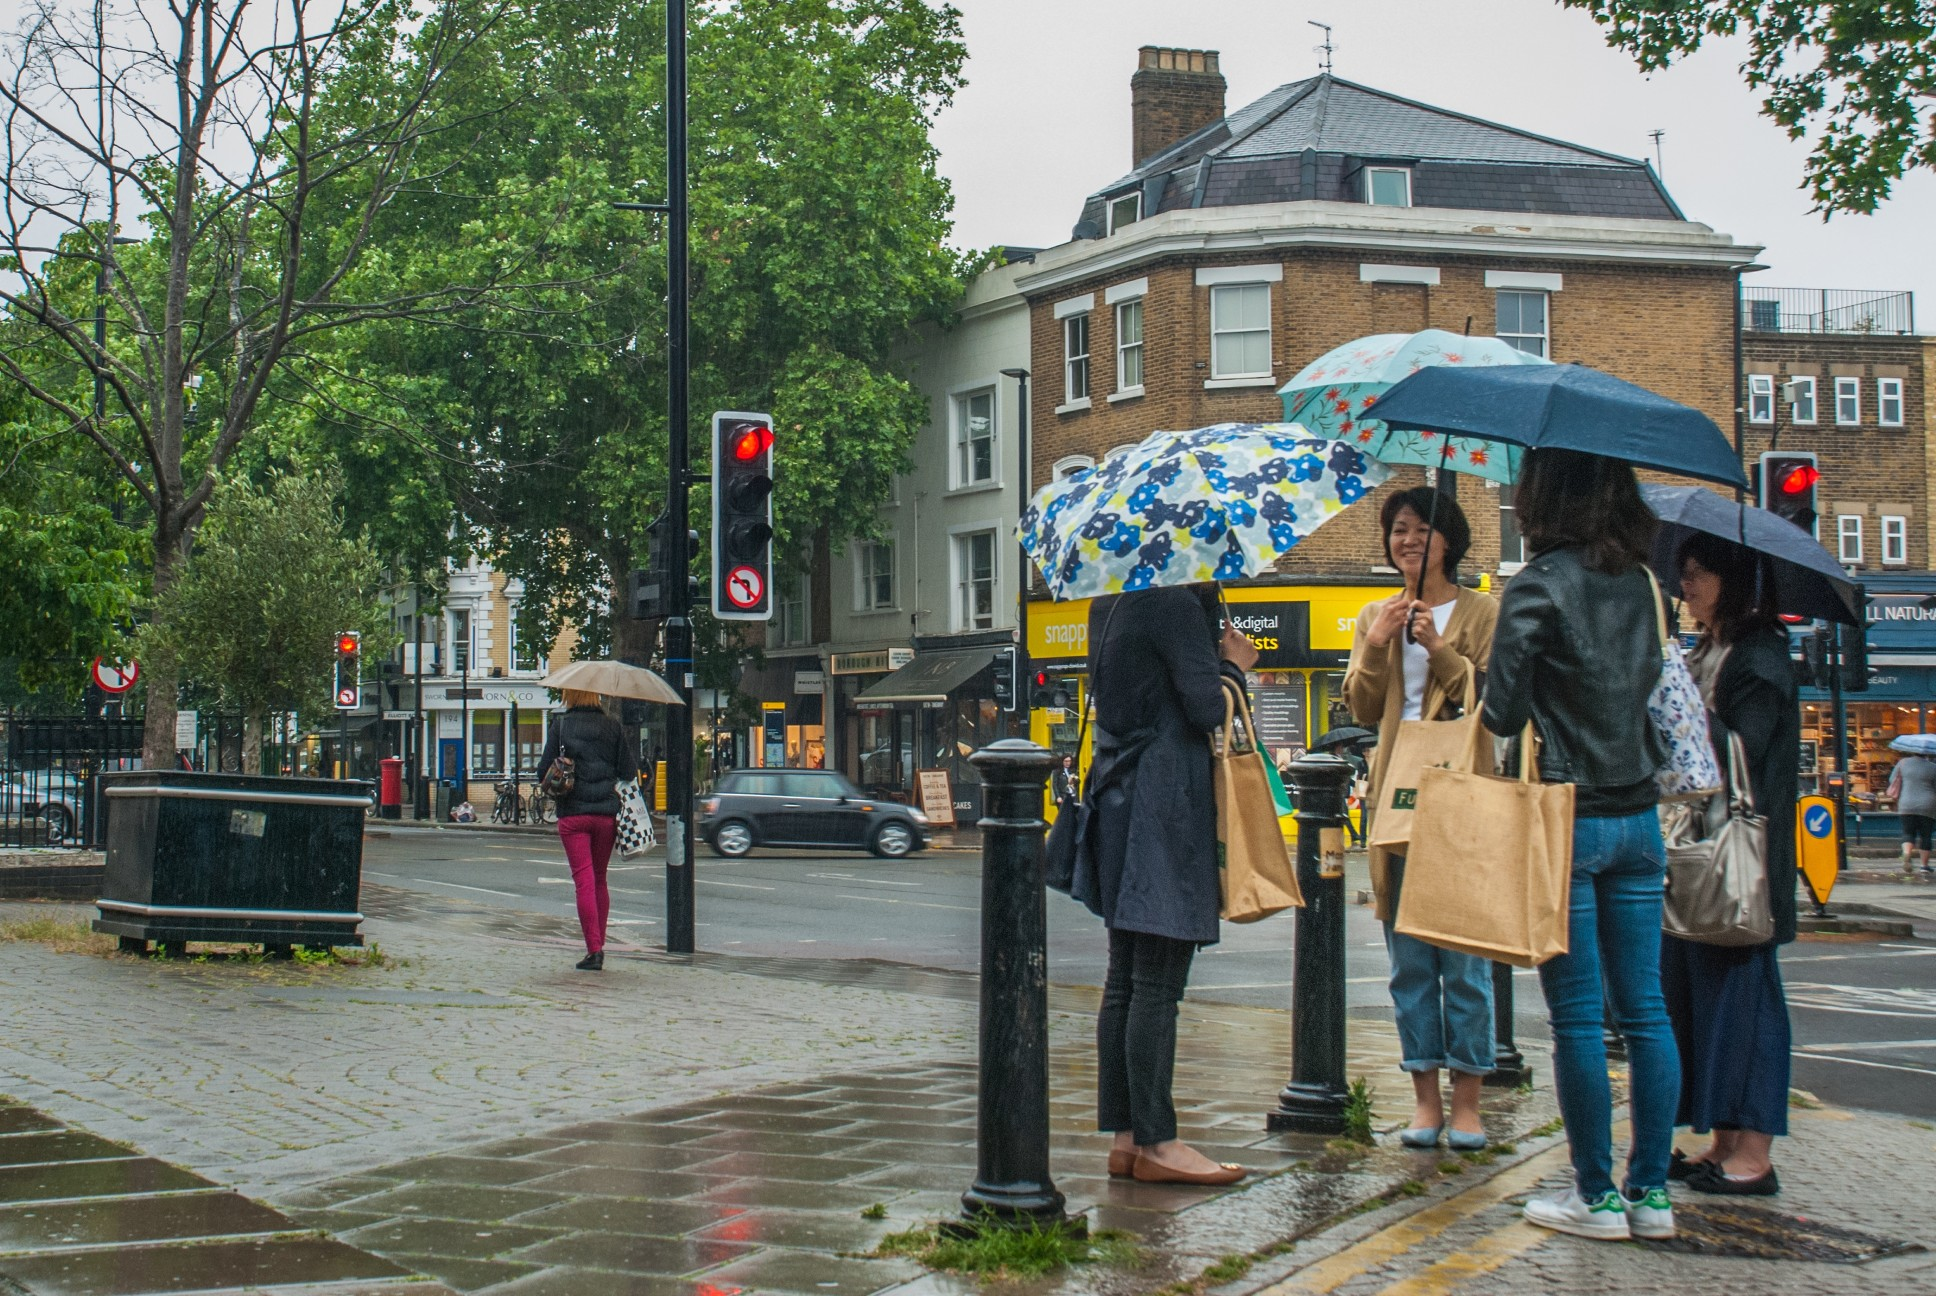 https://watt.co.uk/wp-content/uploads/2020/09/london-uk-jun-5-2019-pedestrians-protect-themself-from-the-rain-with-umbrellas-during-a-rainfall-in_t20_bxLxyp.jpg